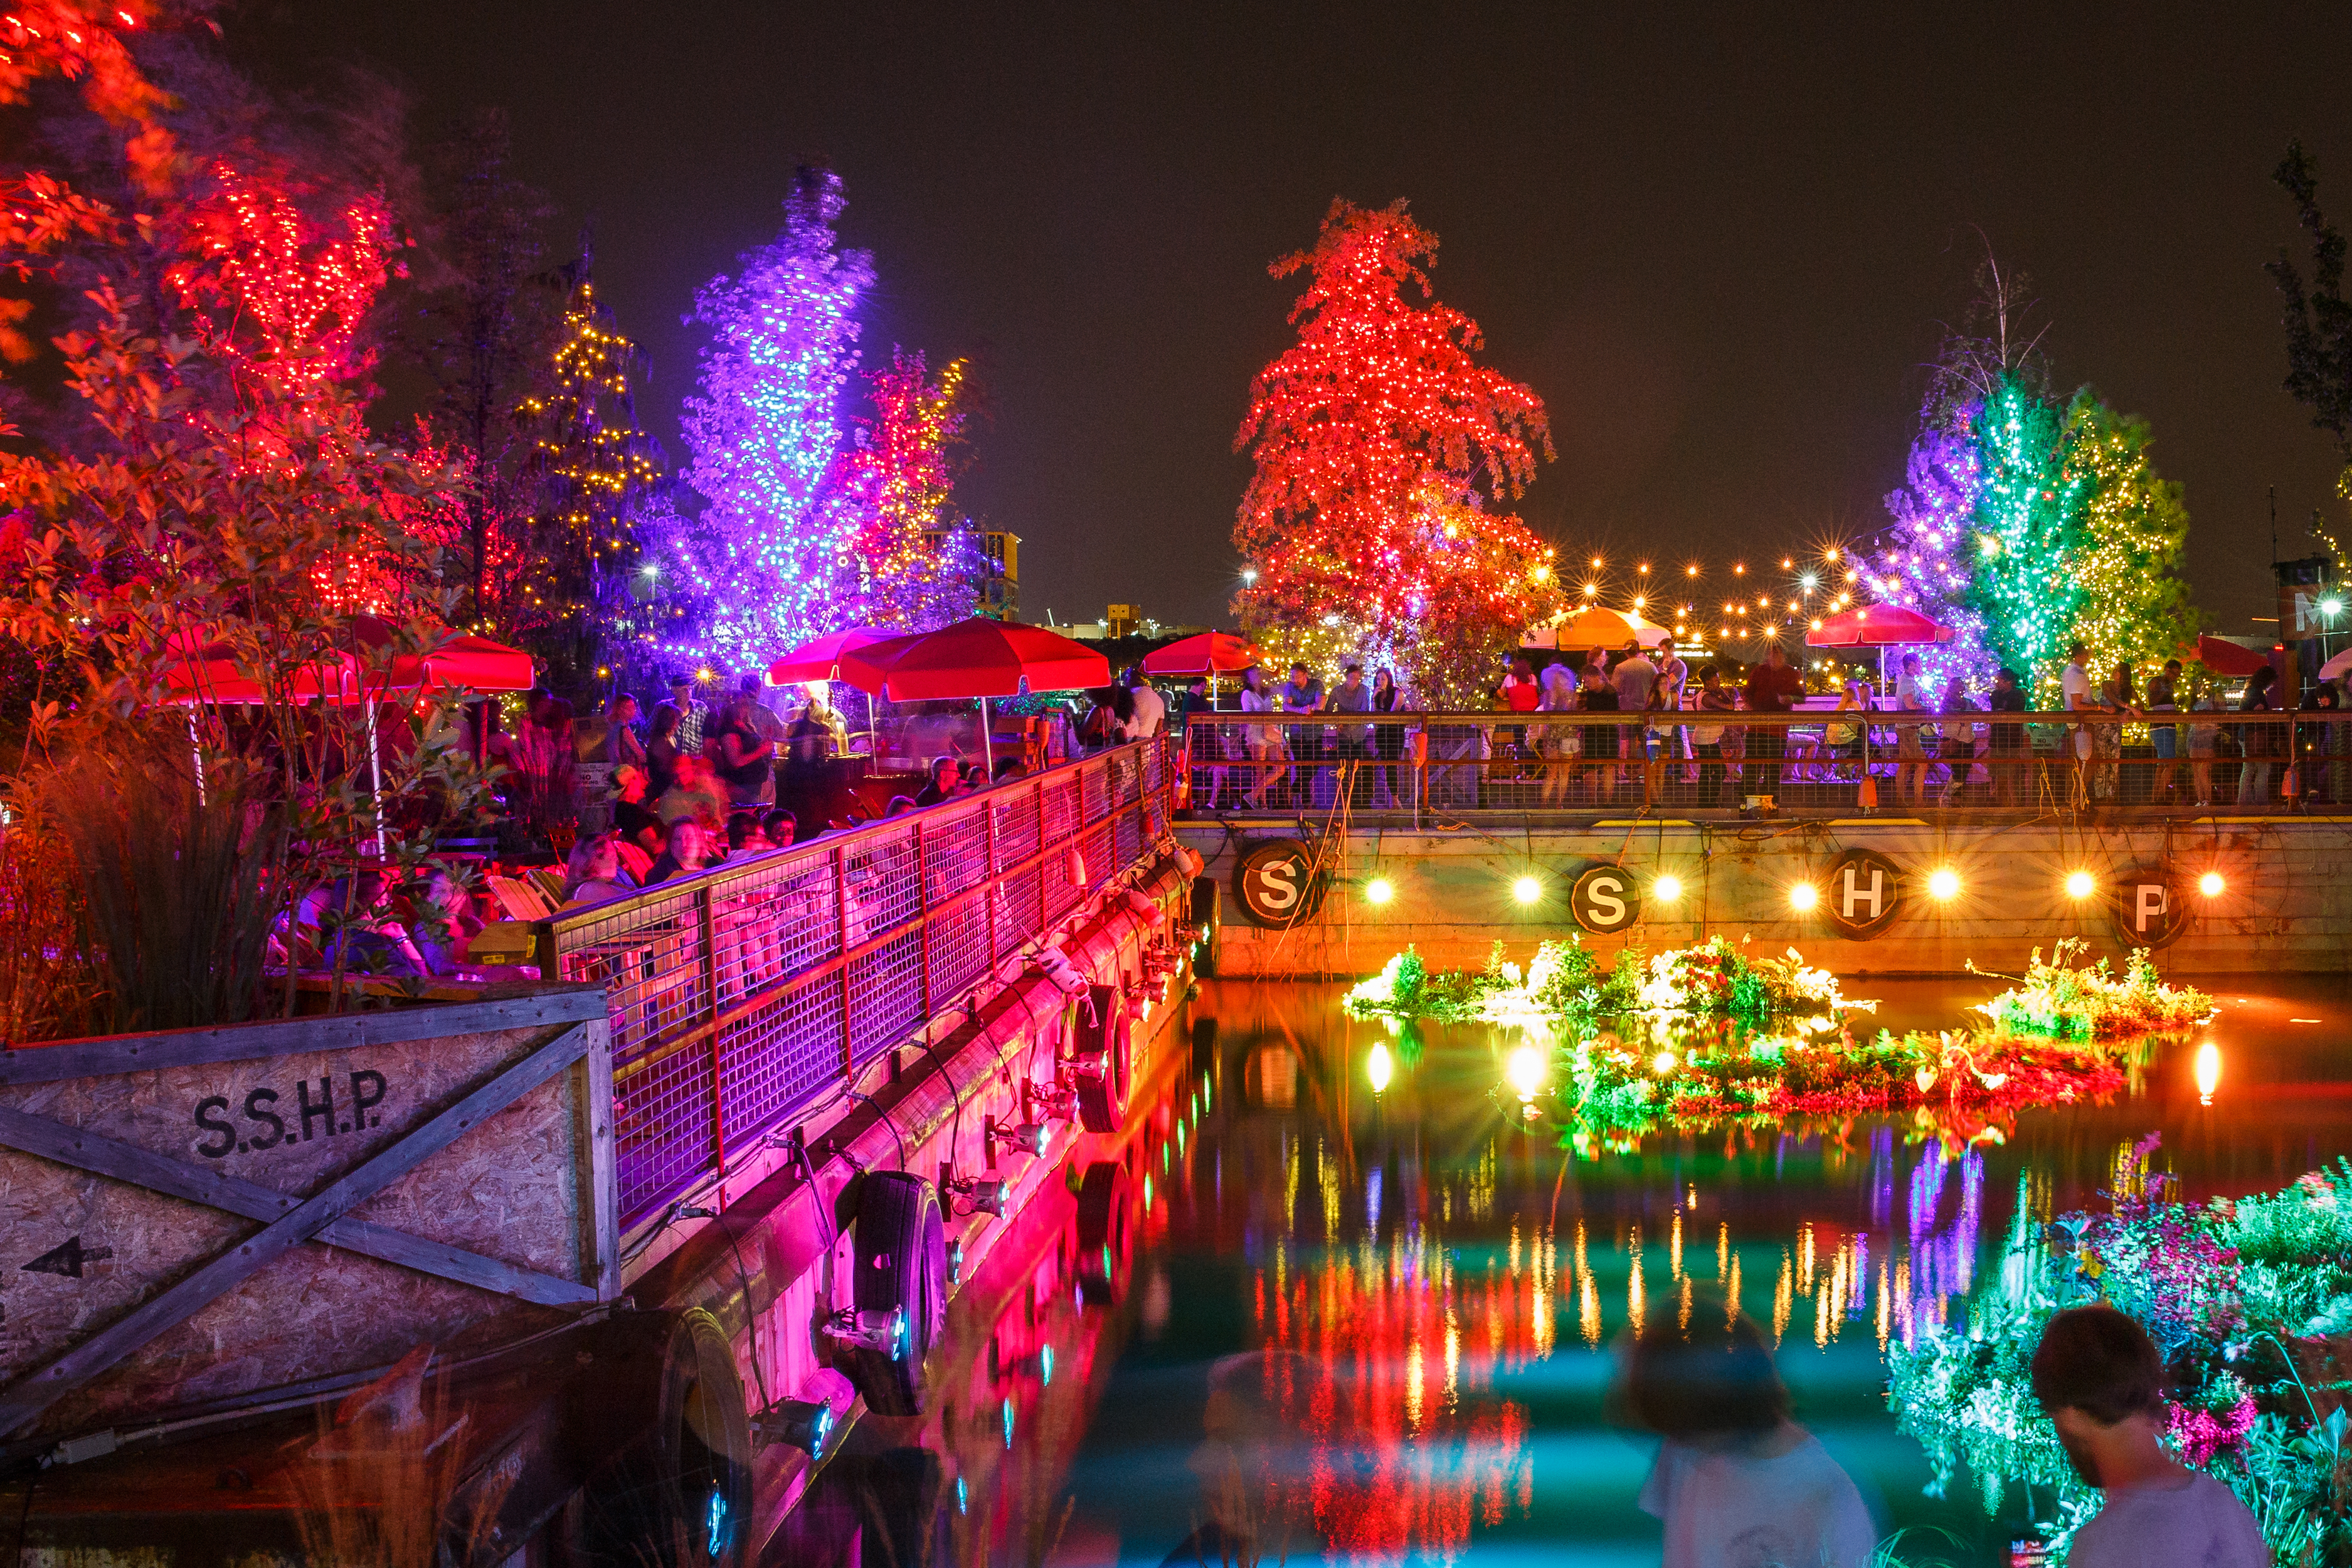 The barge at Spruce Street Harbor Park. (Matt Stanley/DRWC)